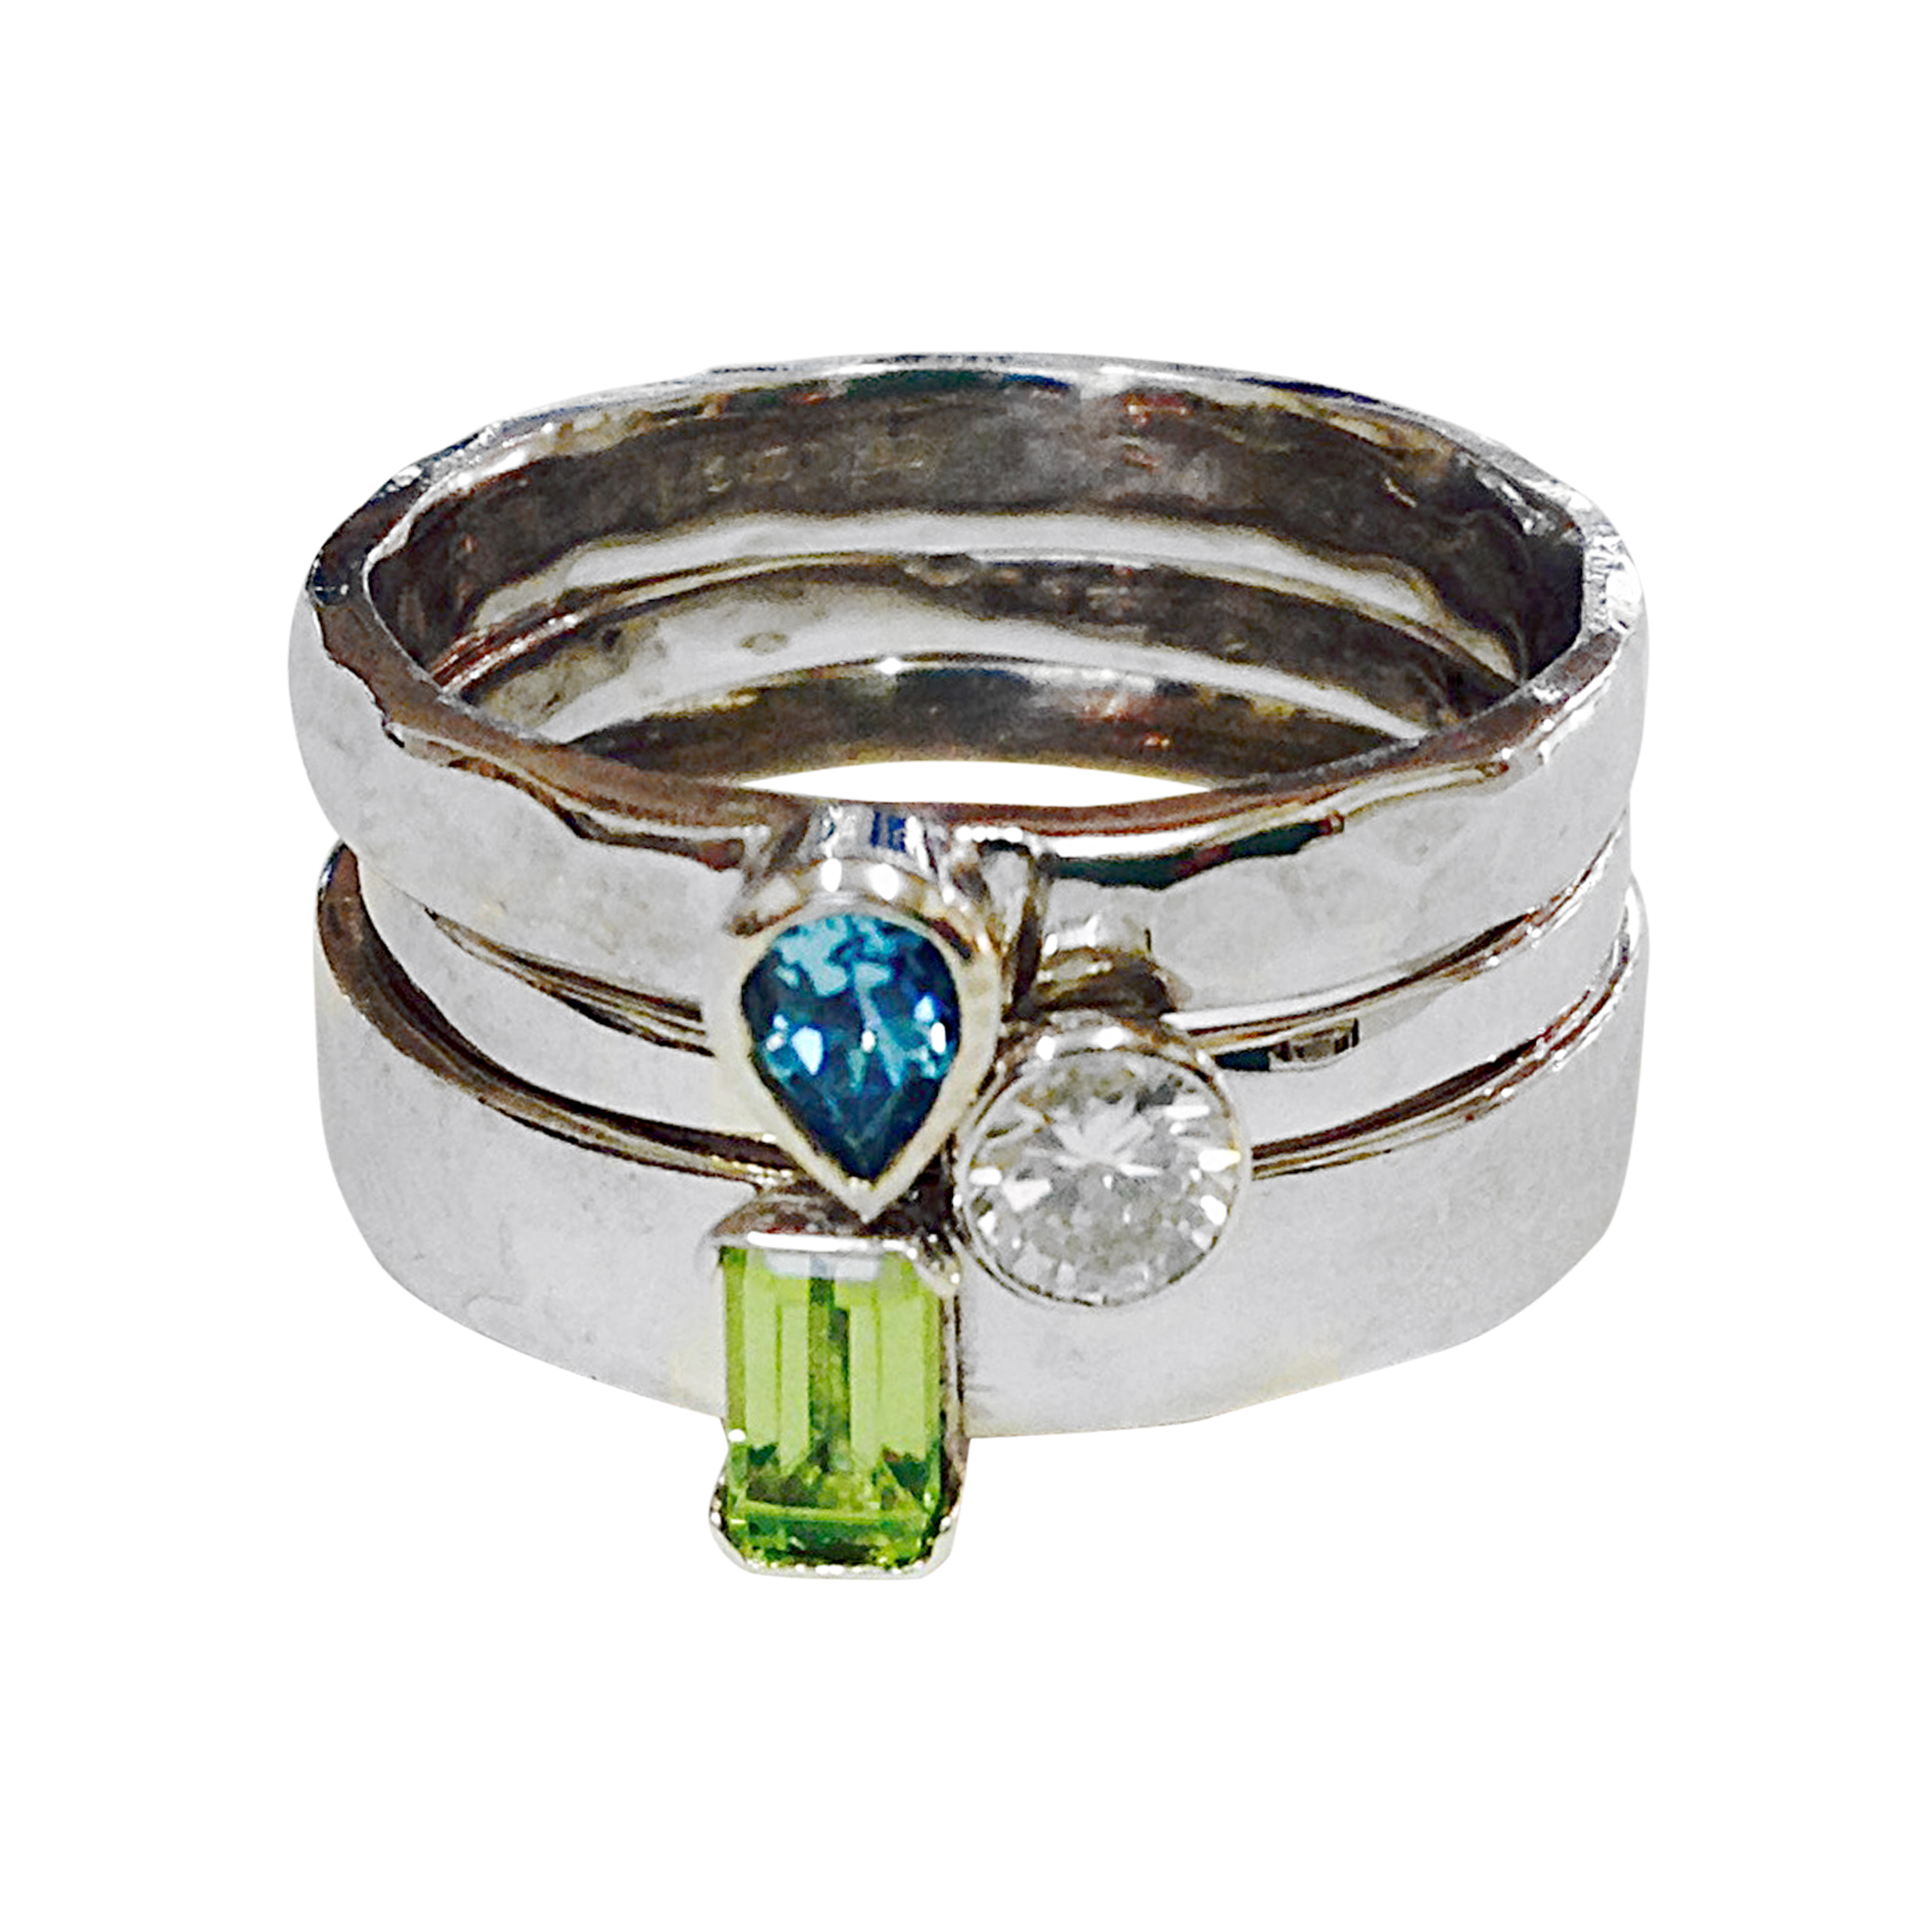 Colette Hazlewood Contemporary Jewellery white gold, topaz, peridot and diamond stacking rings